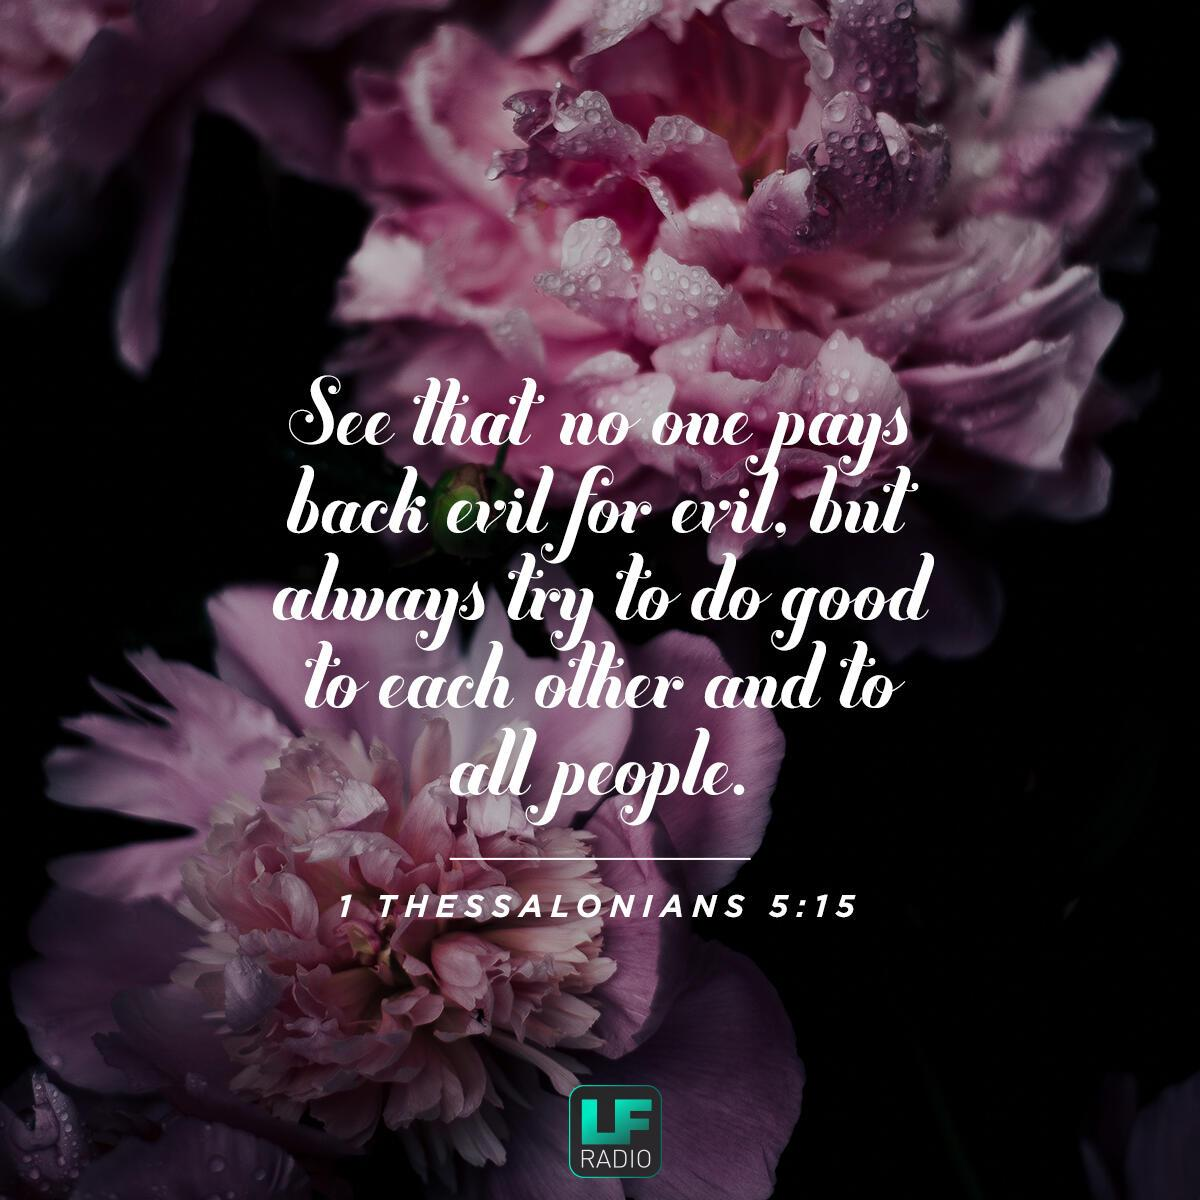 1 Thessalonians 5:15